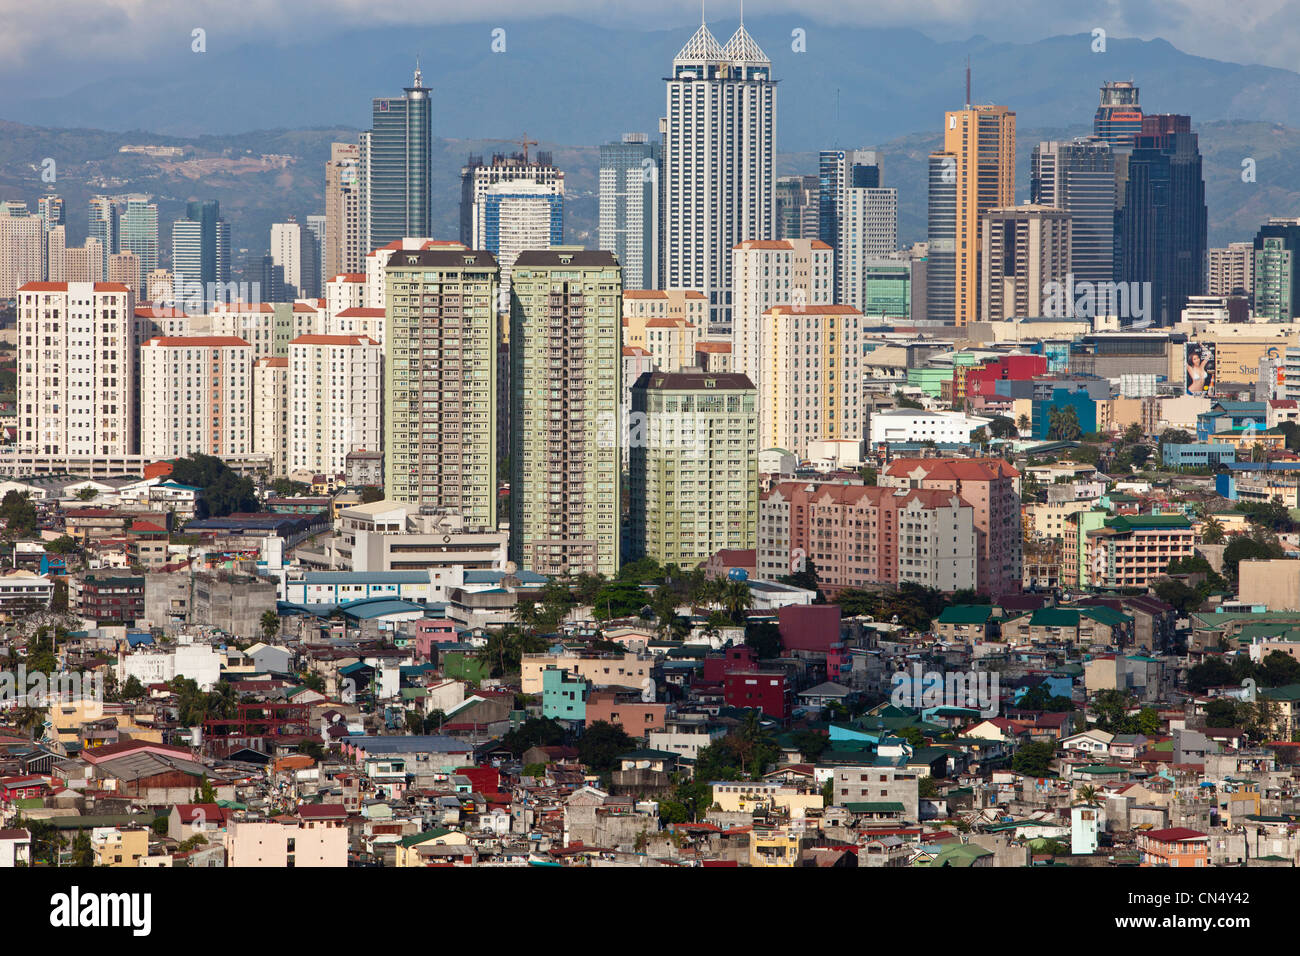 Mandaluyong manila philippines. 🎉 Search results. 2020-01-08